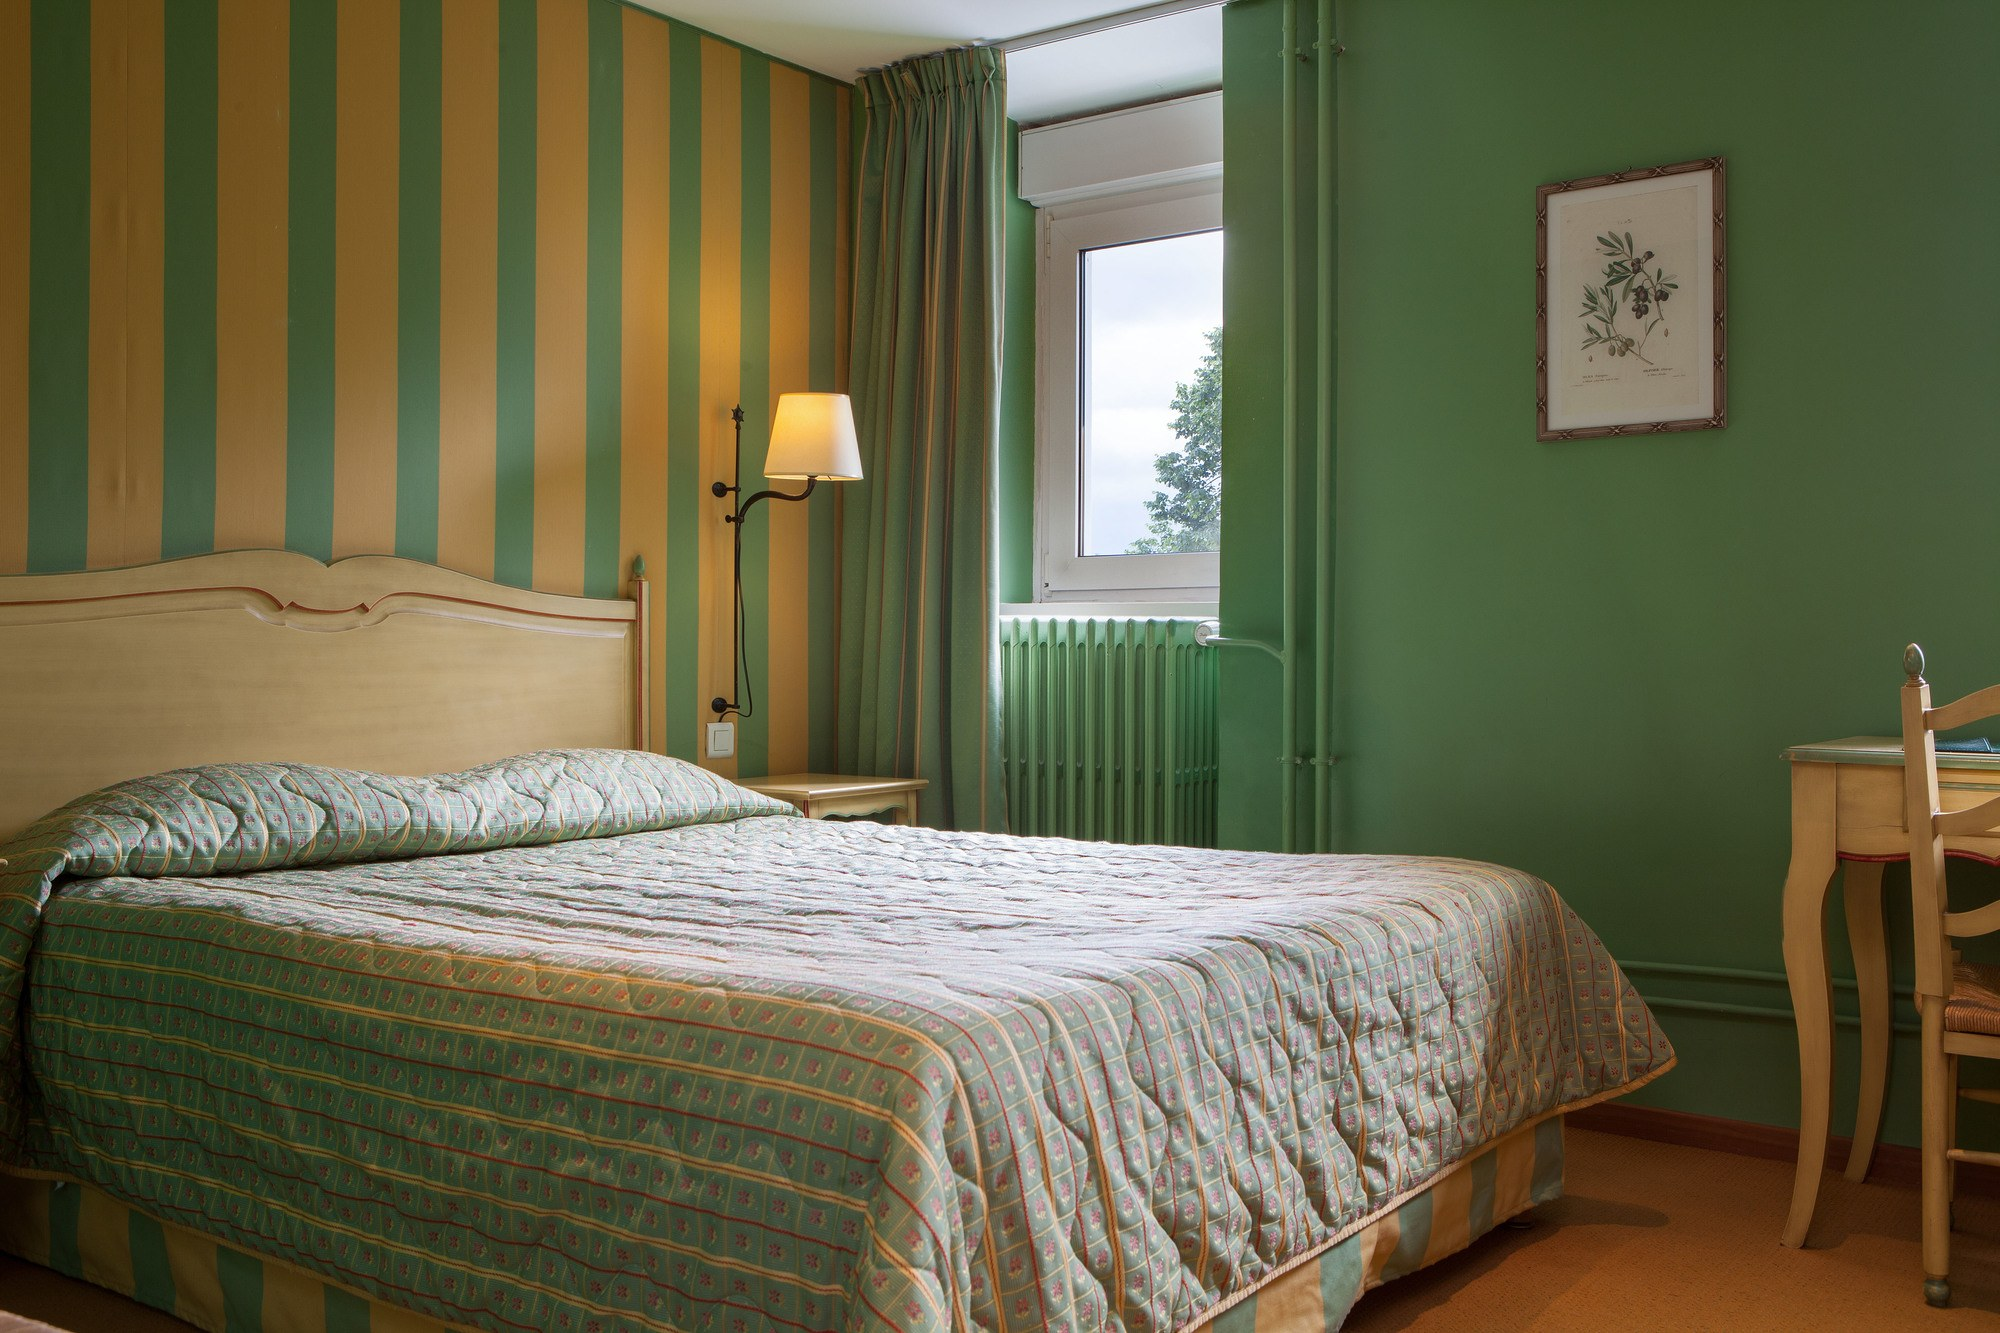 464/Photos/Chambre/Tradition/hotel-beausejour-chambre-tradition-2.jpg